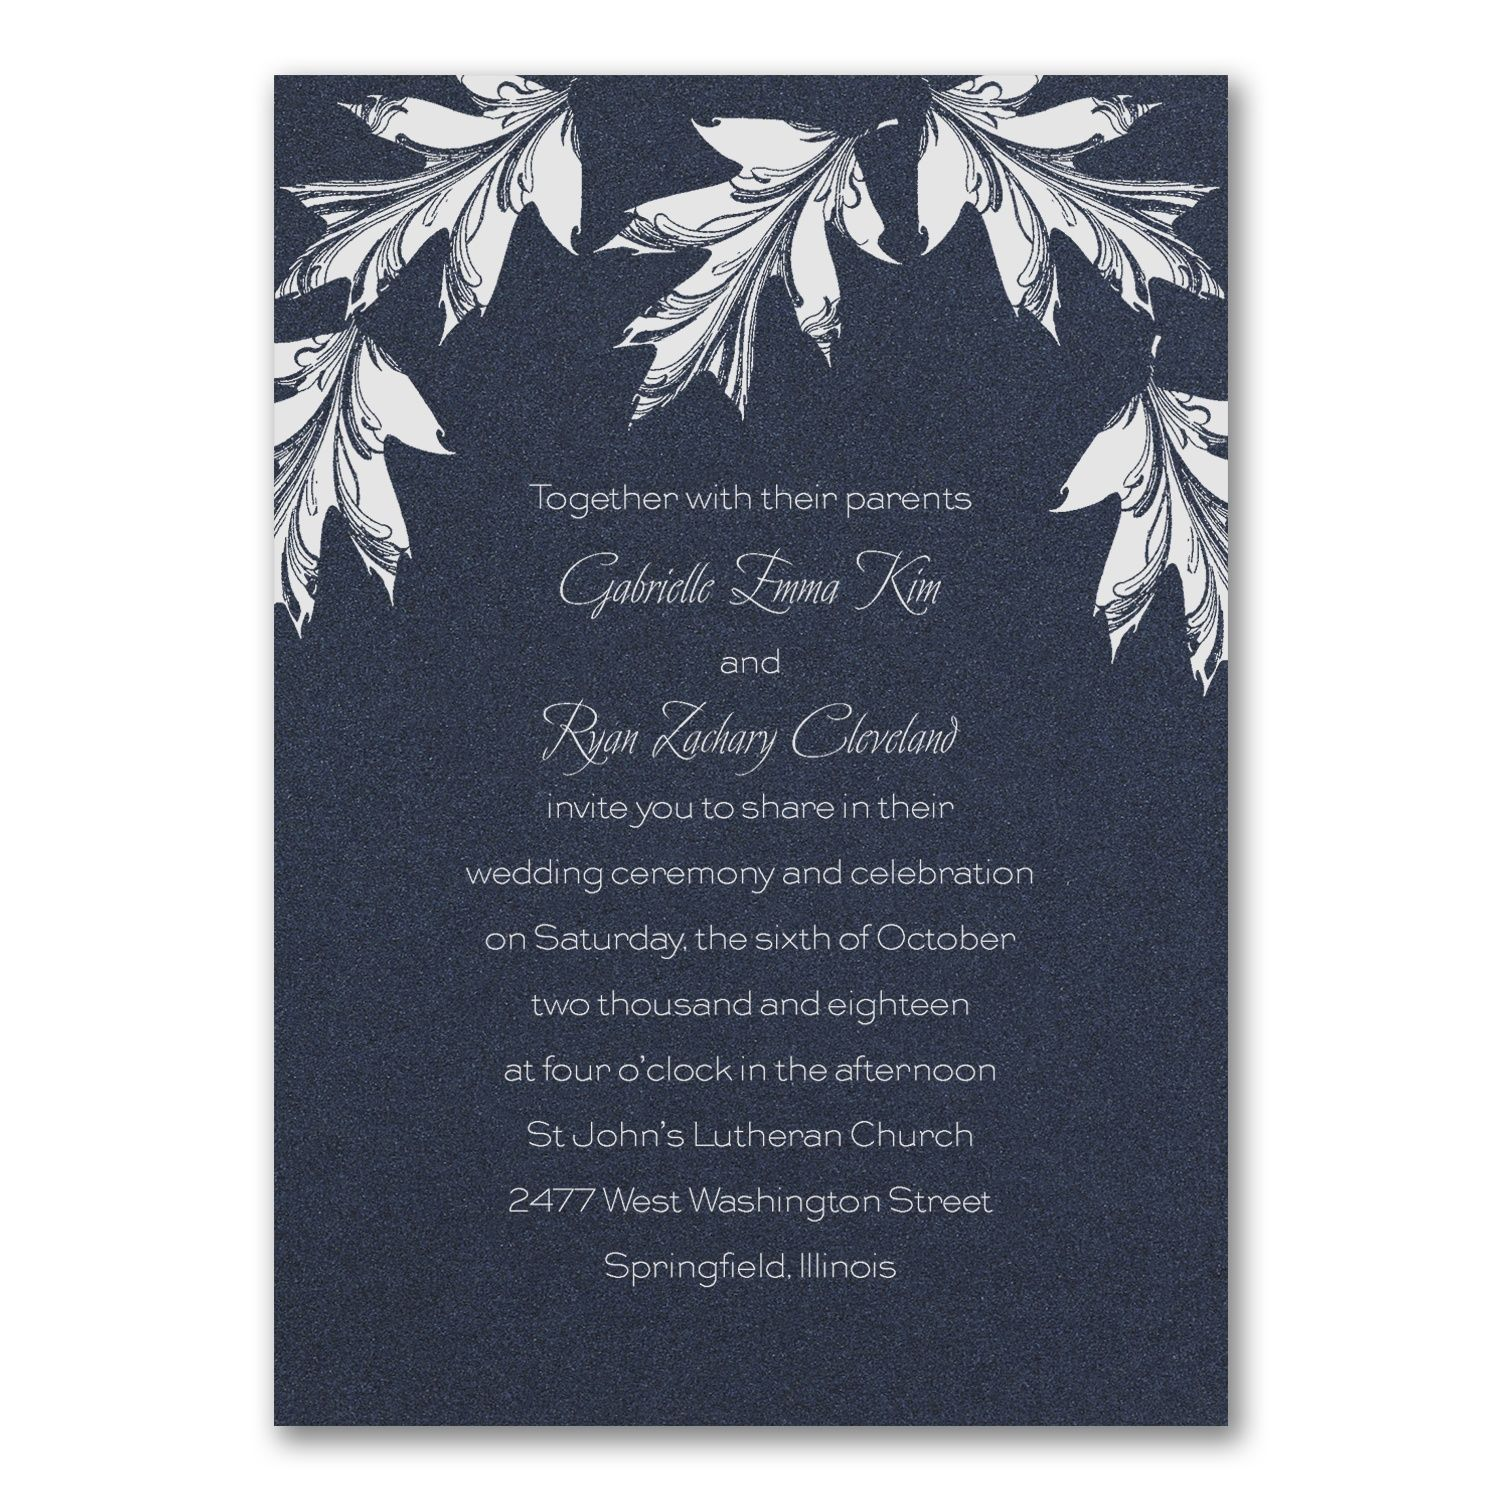 Inexpensive Wedding Ideas For Fall: Pin By Occasions In Print On Fall Wedding Ideas